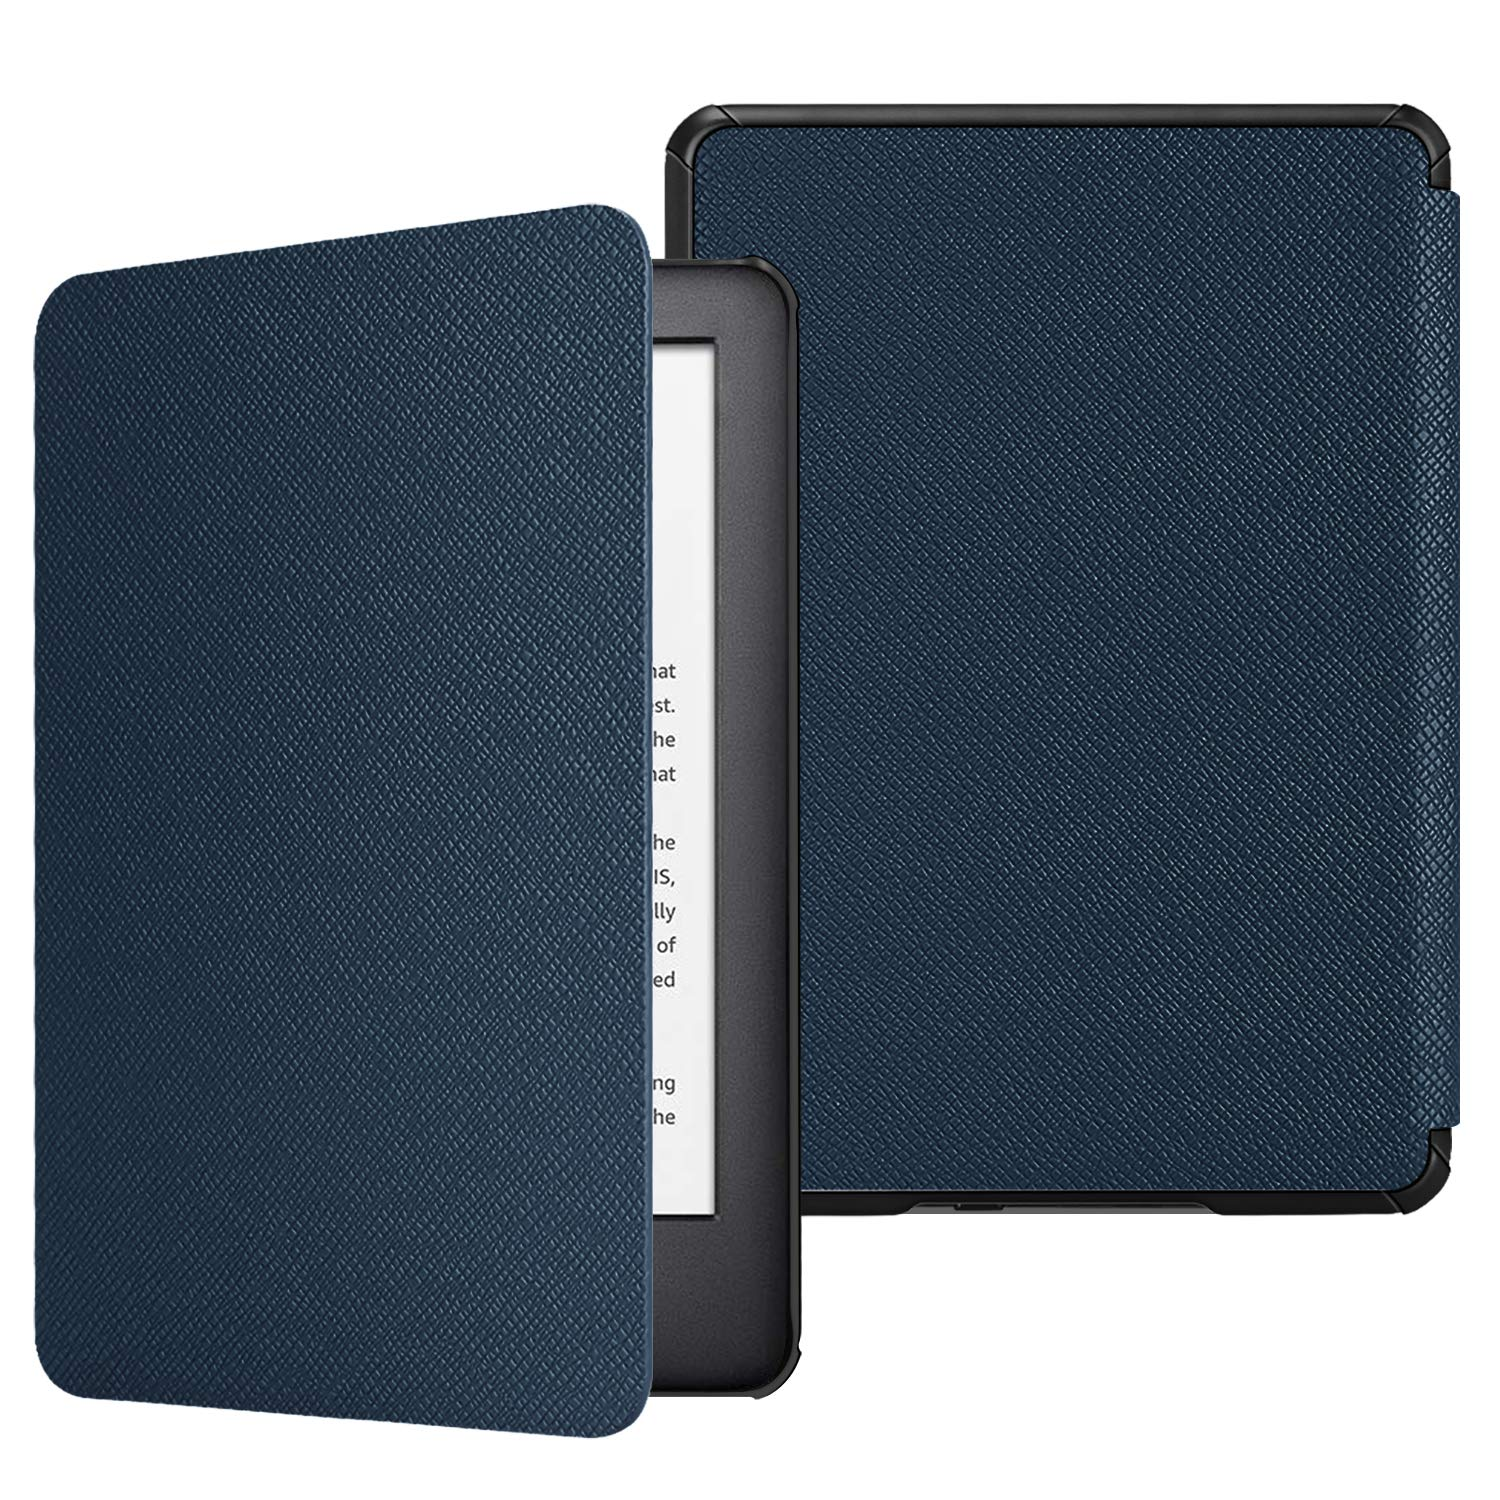 Fintie Slimshell Case for All-New Kindle (10th Generation, 2019 Release) - Lightweight Premium PU Leather Protective Cover with Auto Sleep/Wake (NOT Fit Kindle Paperwhite or Kindle 8th Gen), Navy